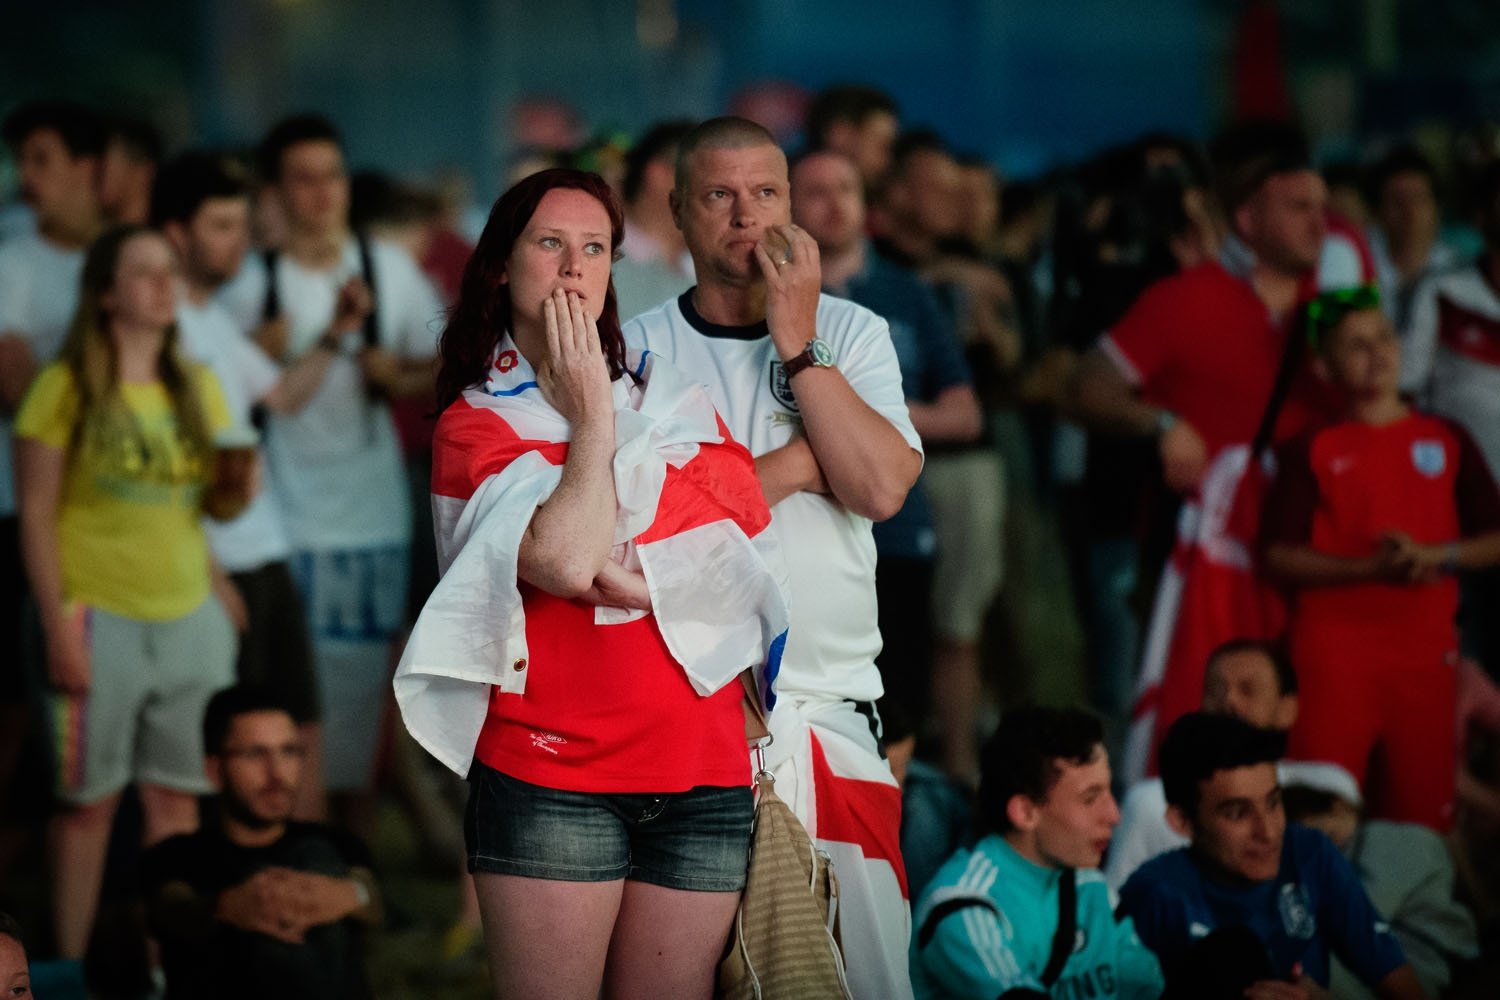 England supporters react as they watch the Euro 2016 group B football match between England and Russia from the fanzone in Marseille, on June 11, 2016